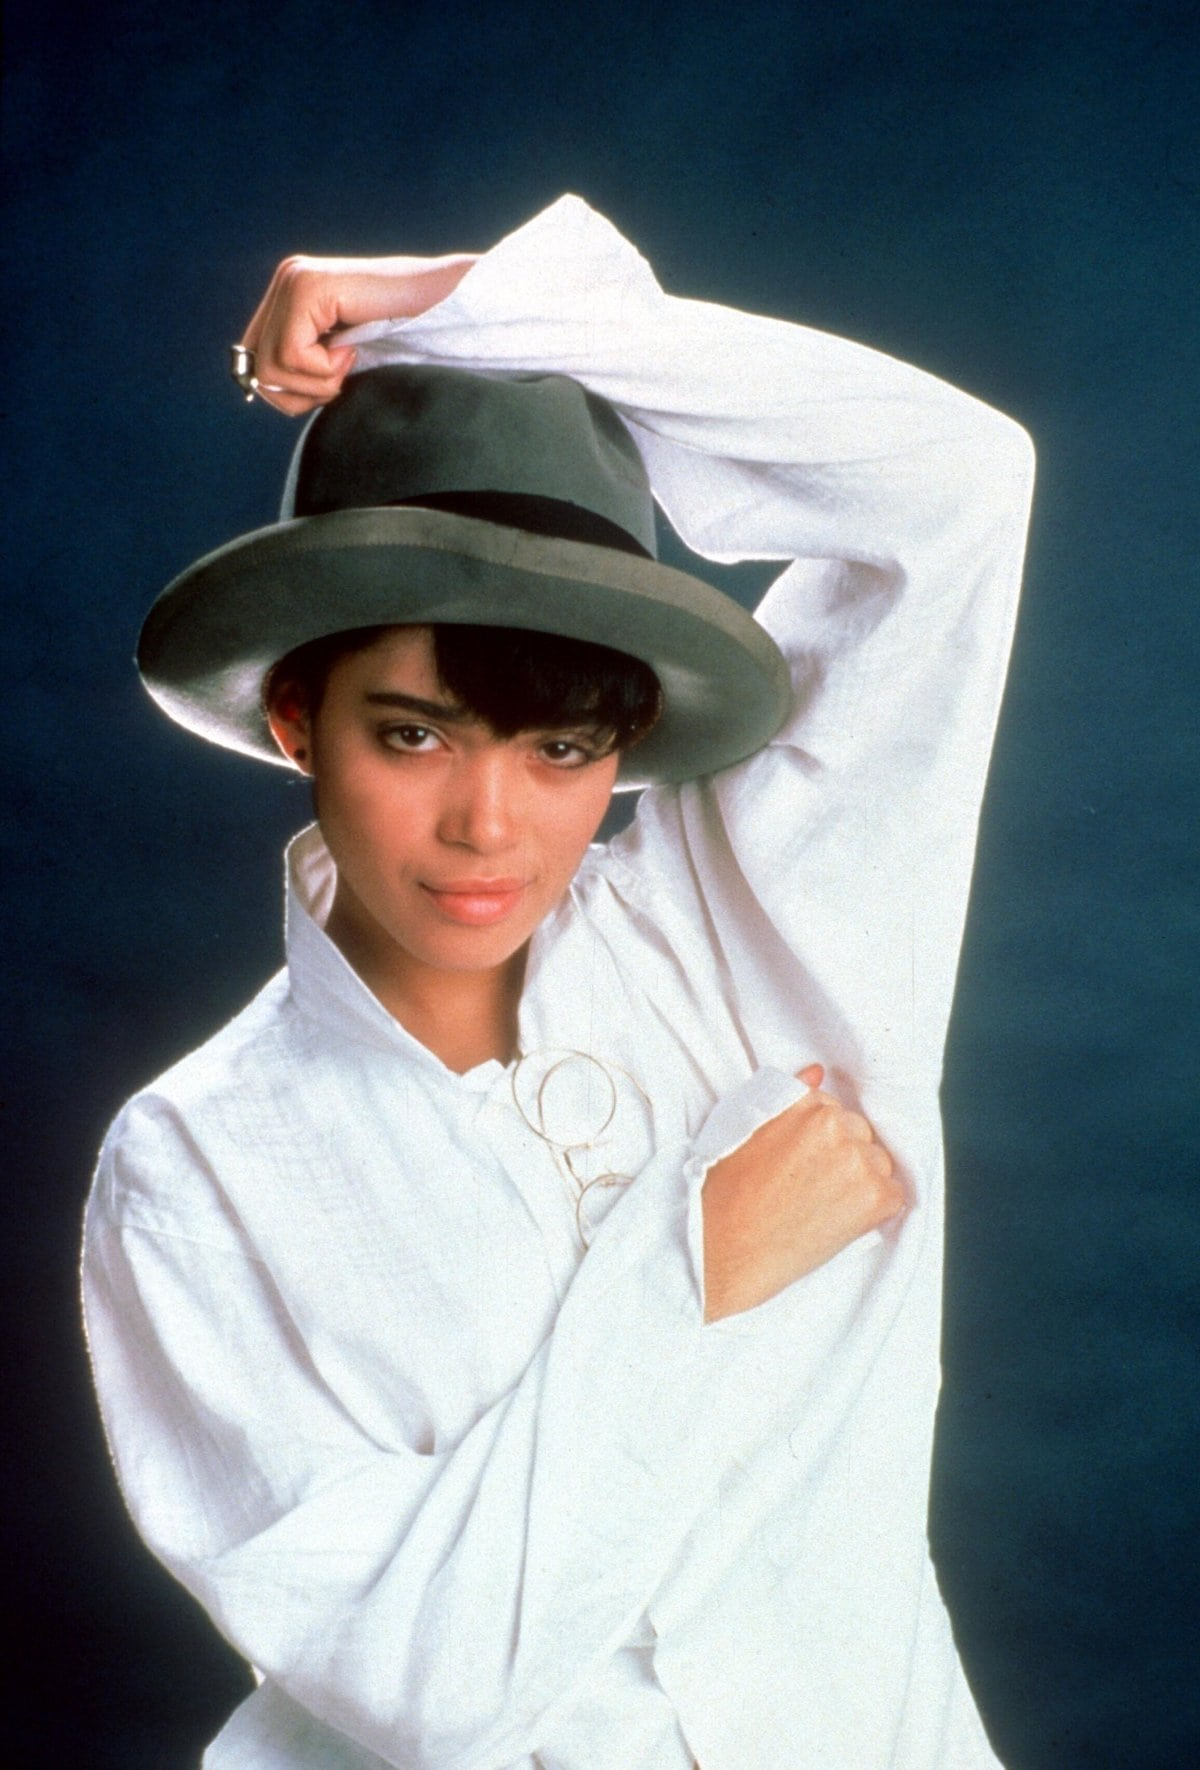 Lisa Bonet was 16 years old when she landed the role of Denise Huxtable in the hit comedy series The Cosby Show